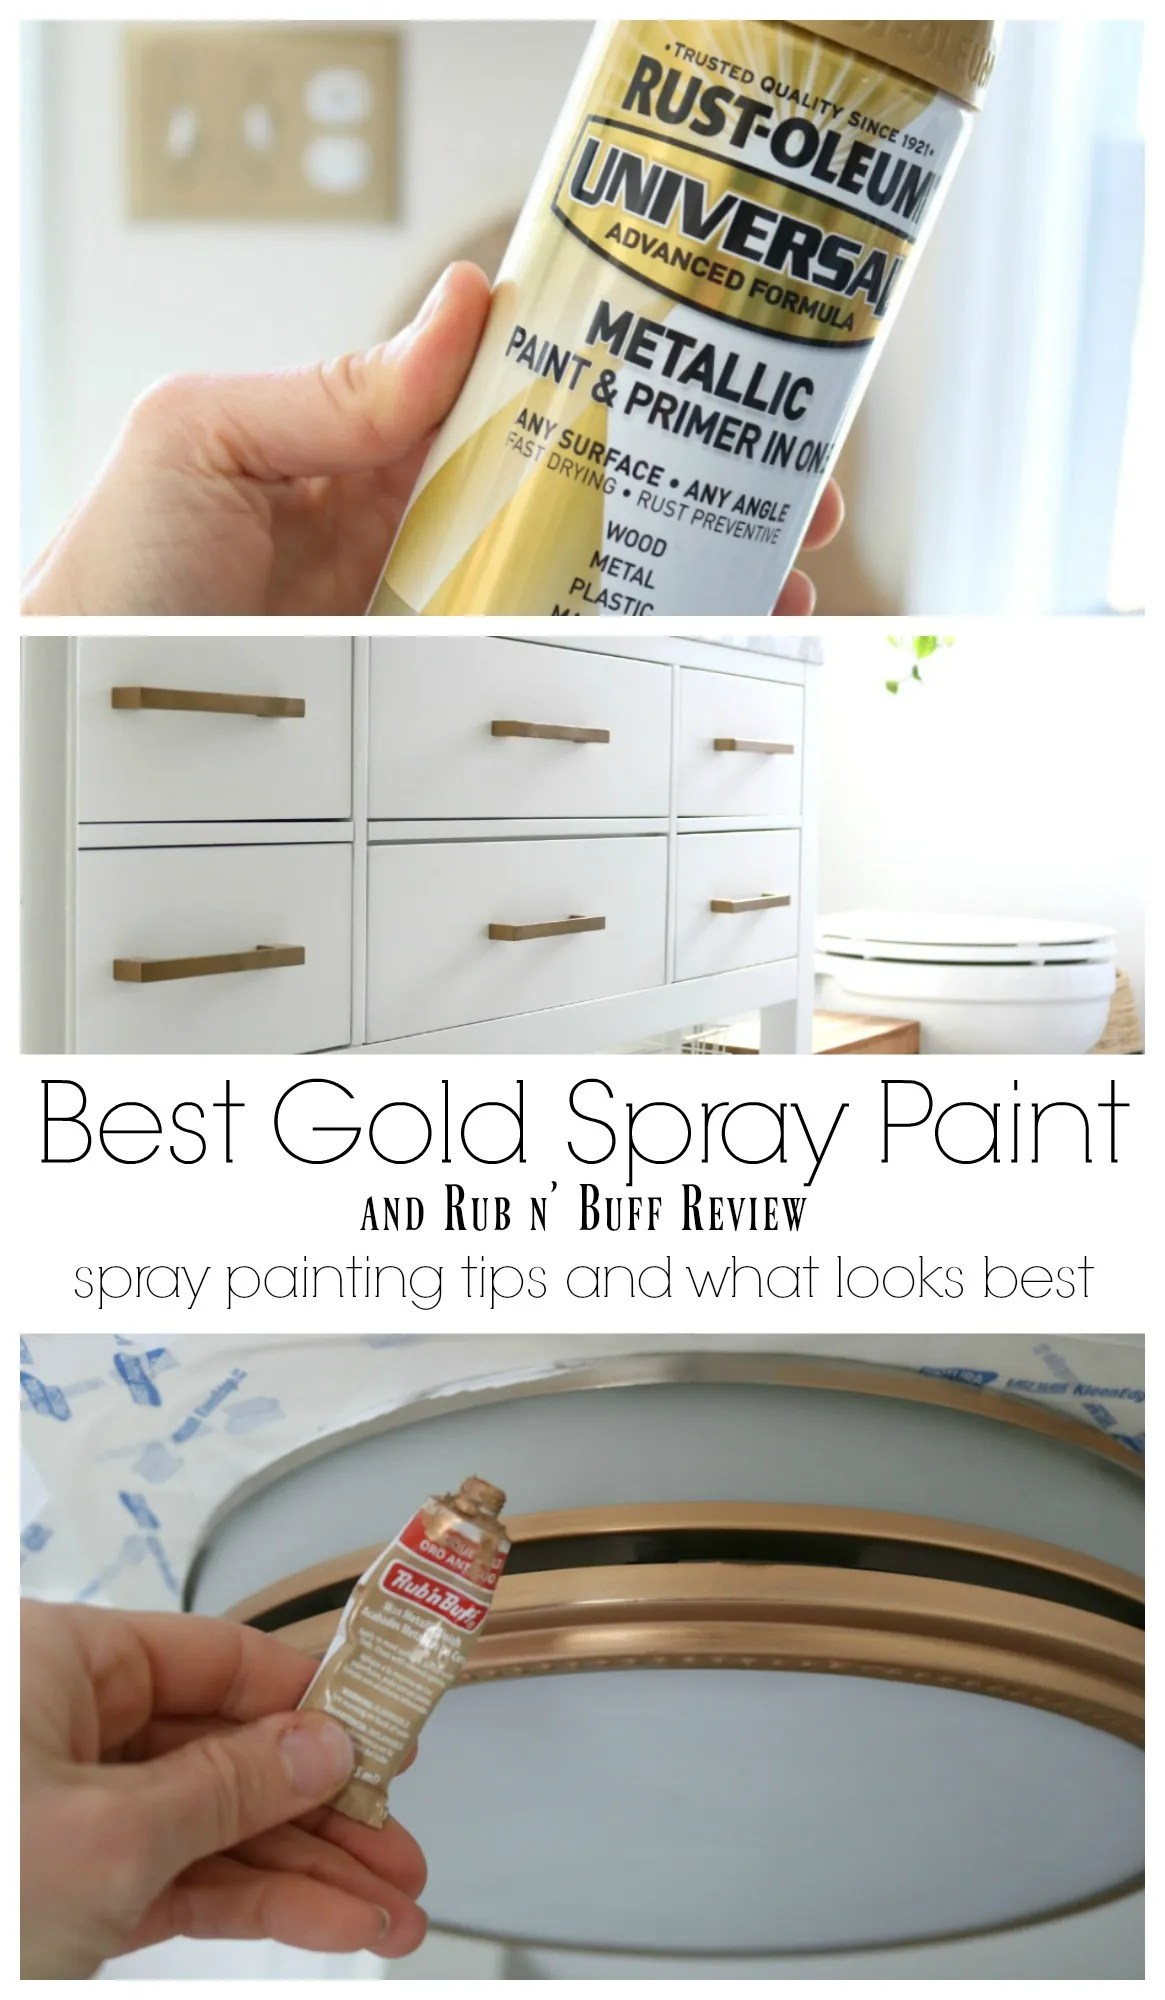 The Best Gold Spray Paint- Spray Paint Tips